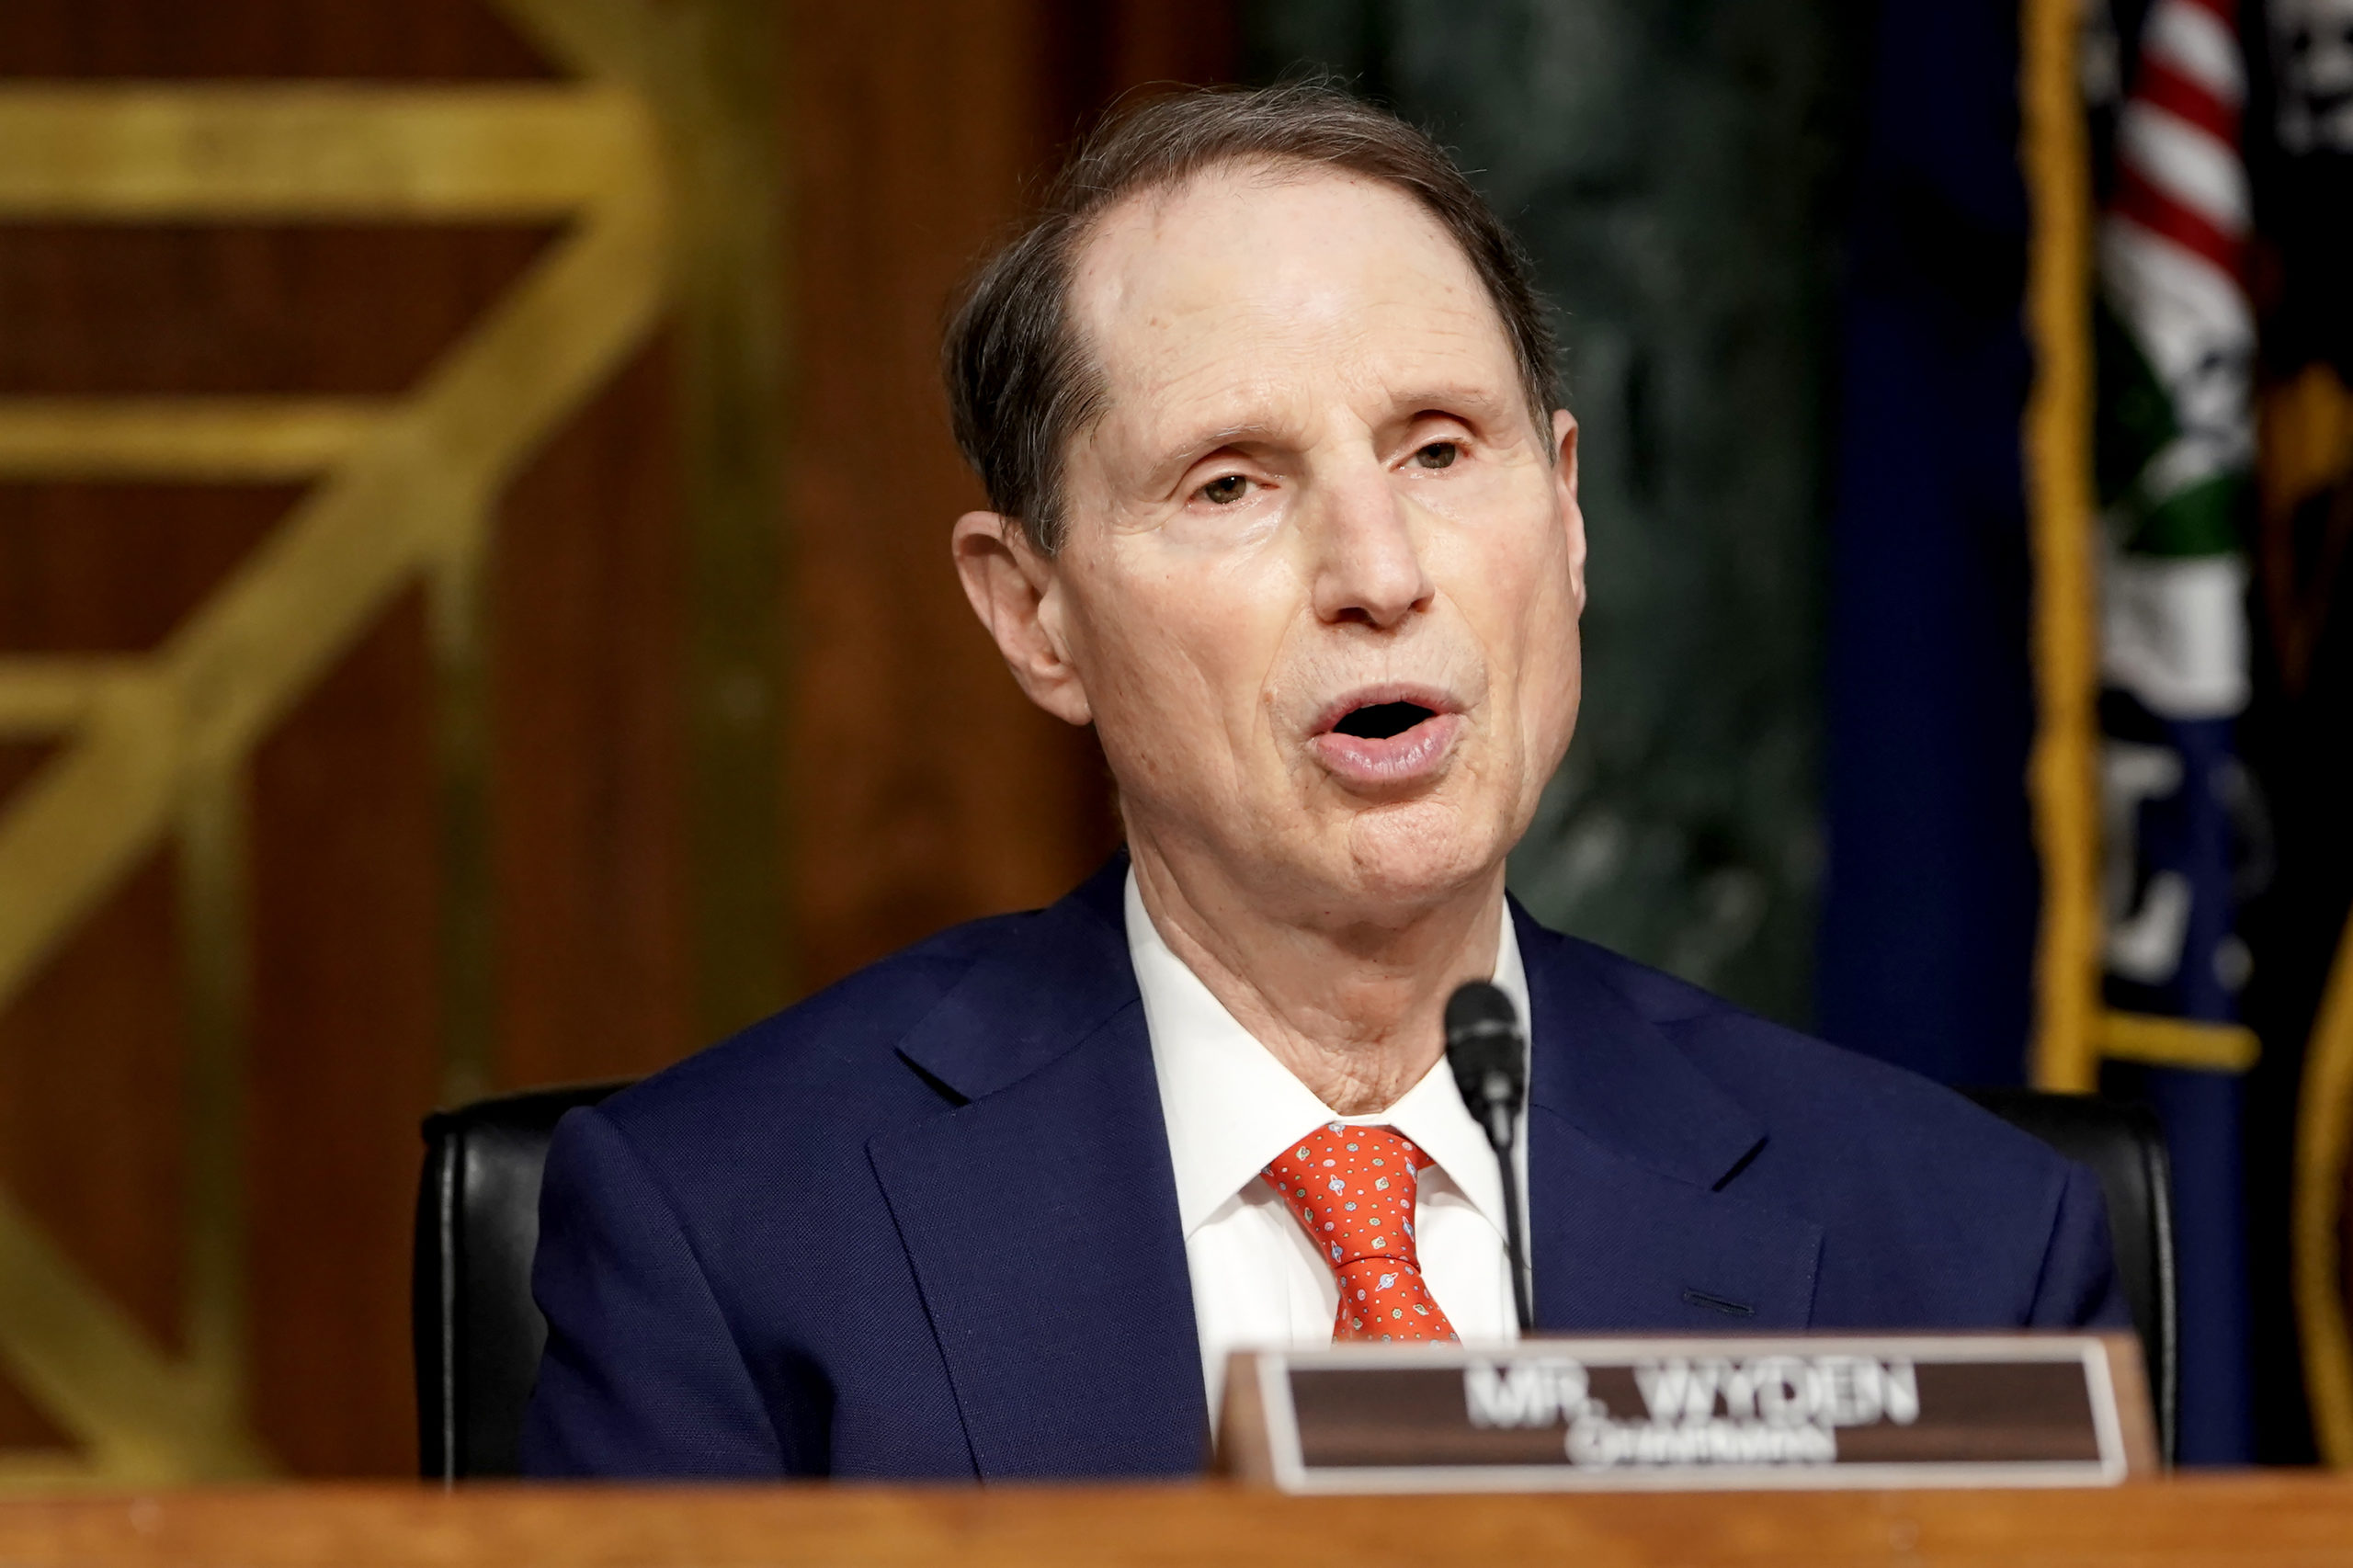 Senate Finance Committee Chairman Ron Wyden makes an opening statement during a nomination hearing for Xavier Becerra on Feb. 24. (Greg Nash/Pool/Getty Images)